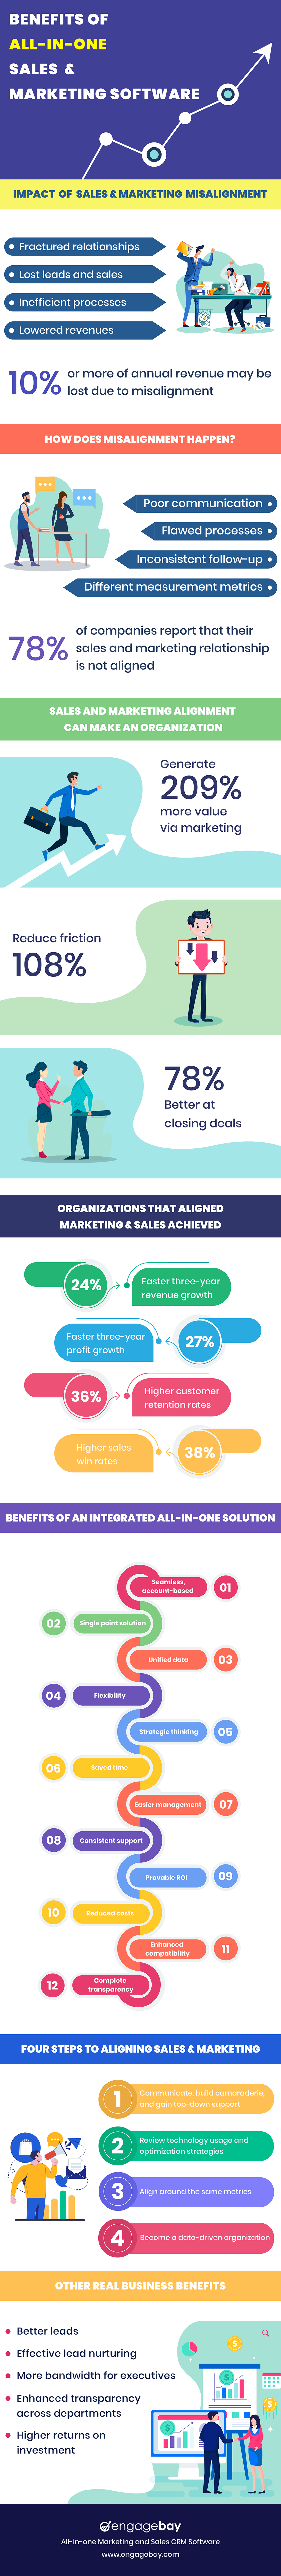 INFOGRAPHIC : BENEFITS OF ALL-IN-ONE SALES & MARKETING SOFTWARE